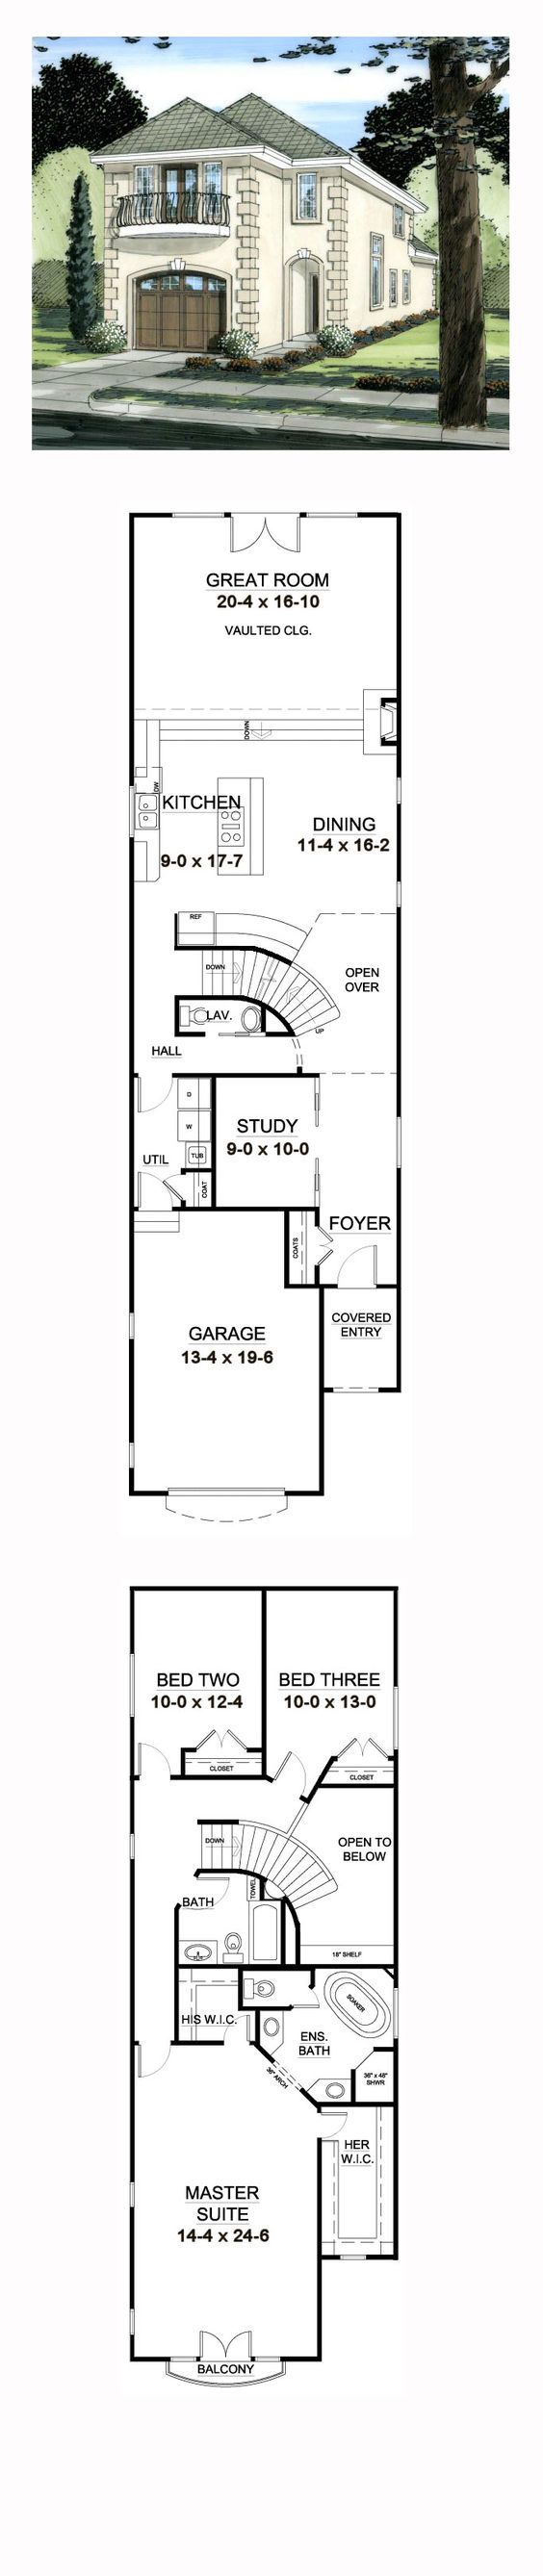 Florida house plan 99997 house chang 39 e 3 and narrow lot for Narrow lot one story house plans